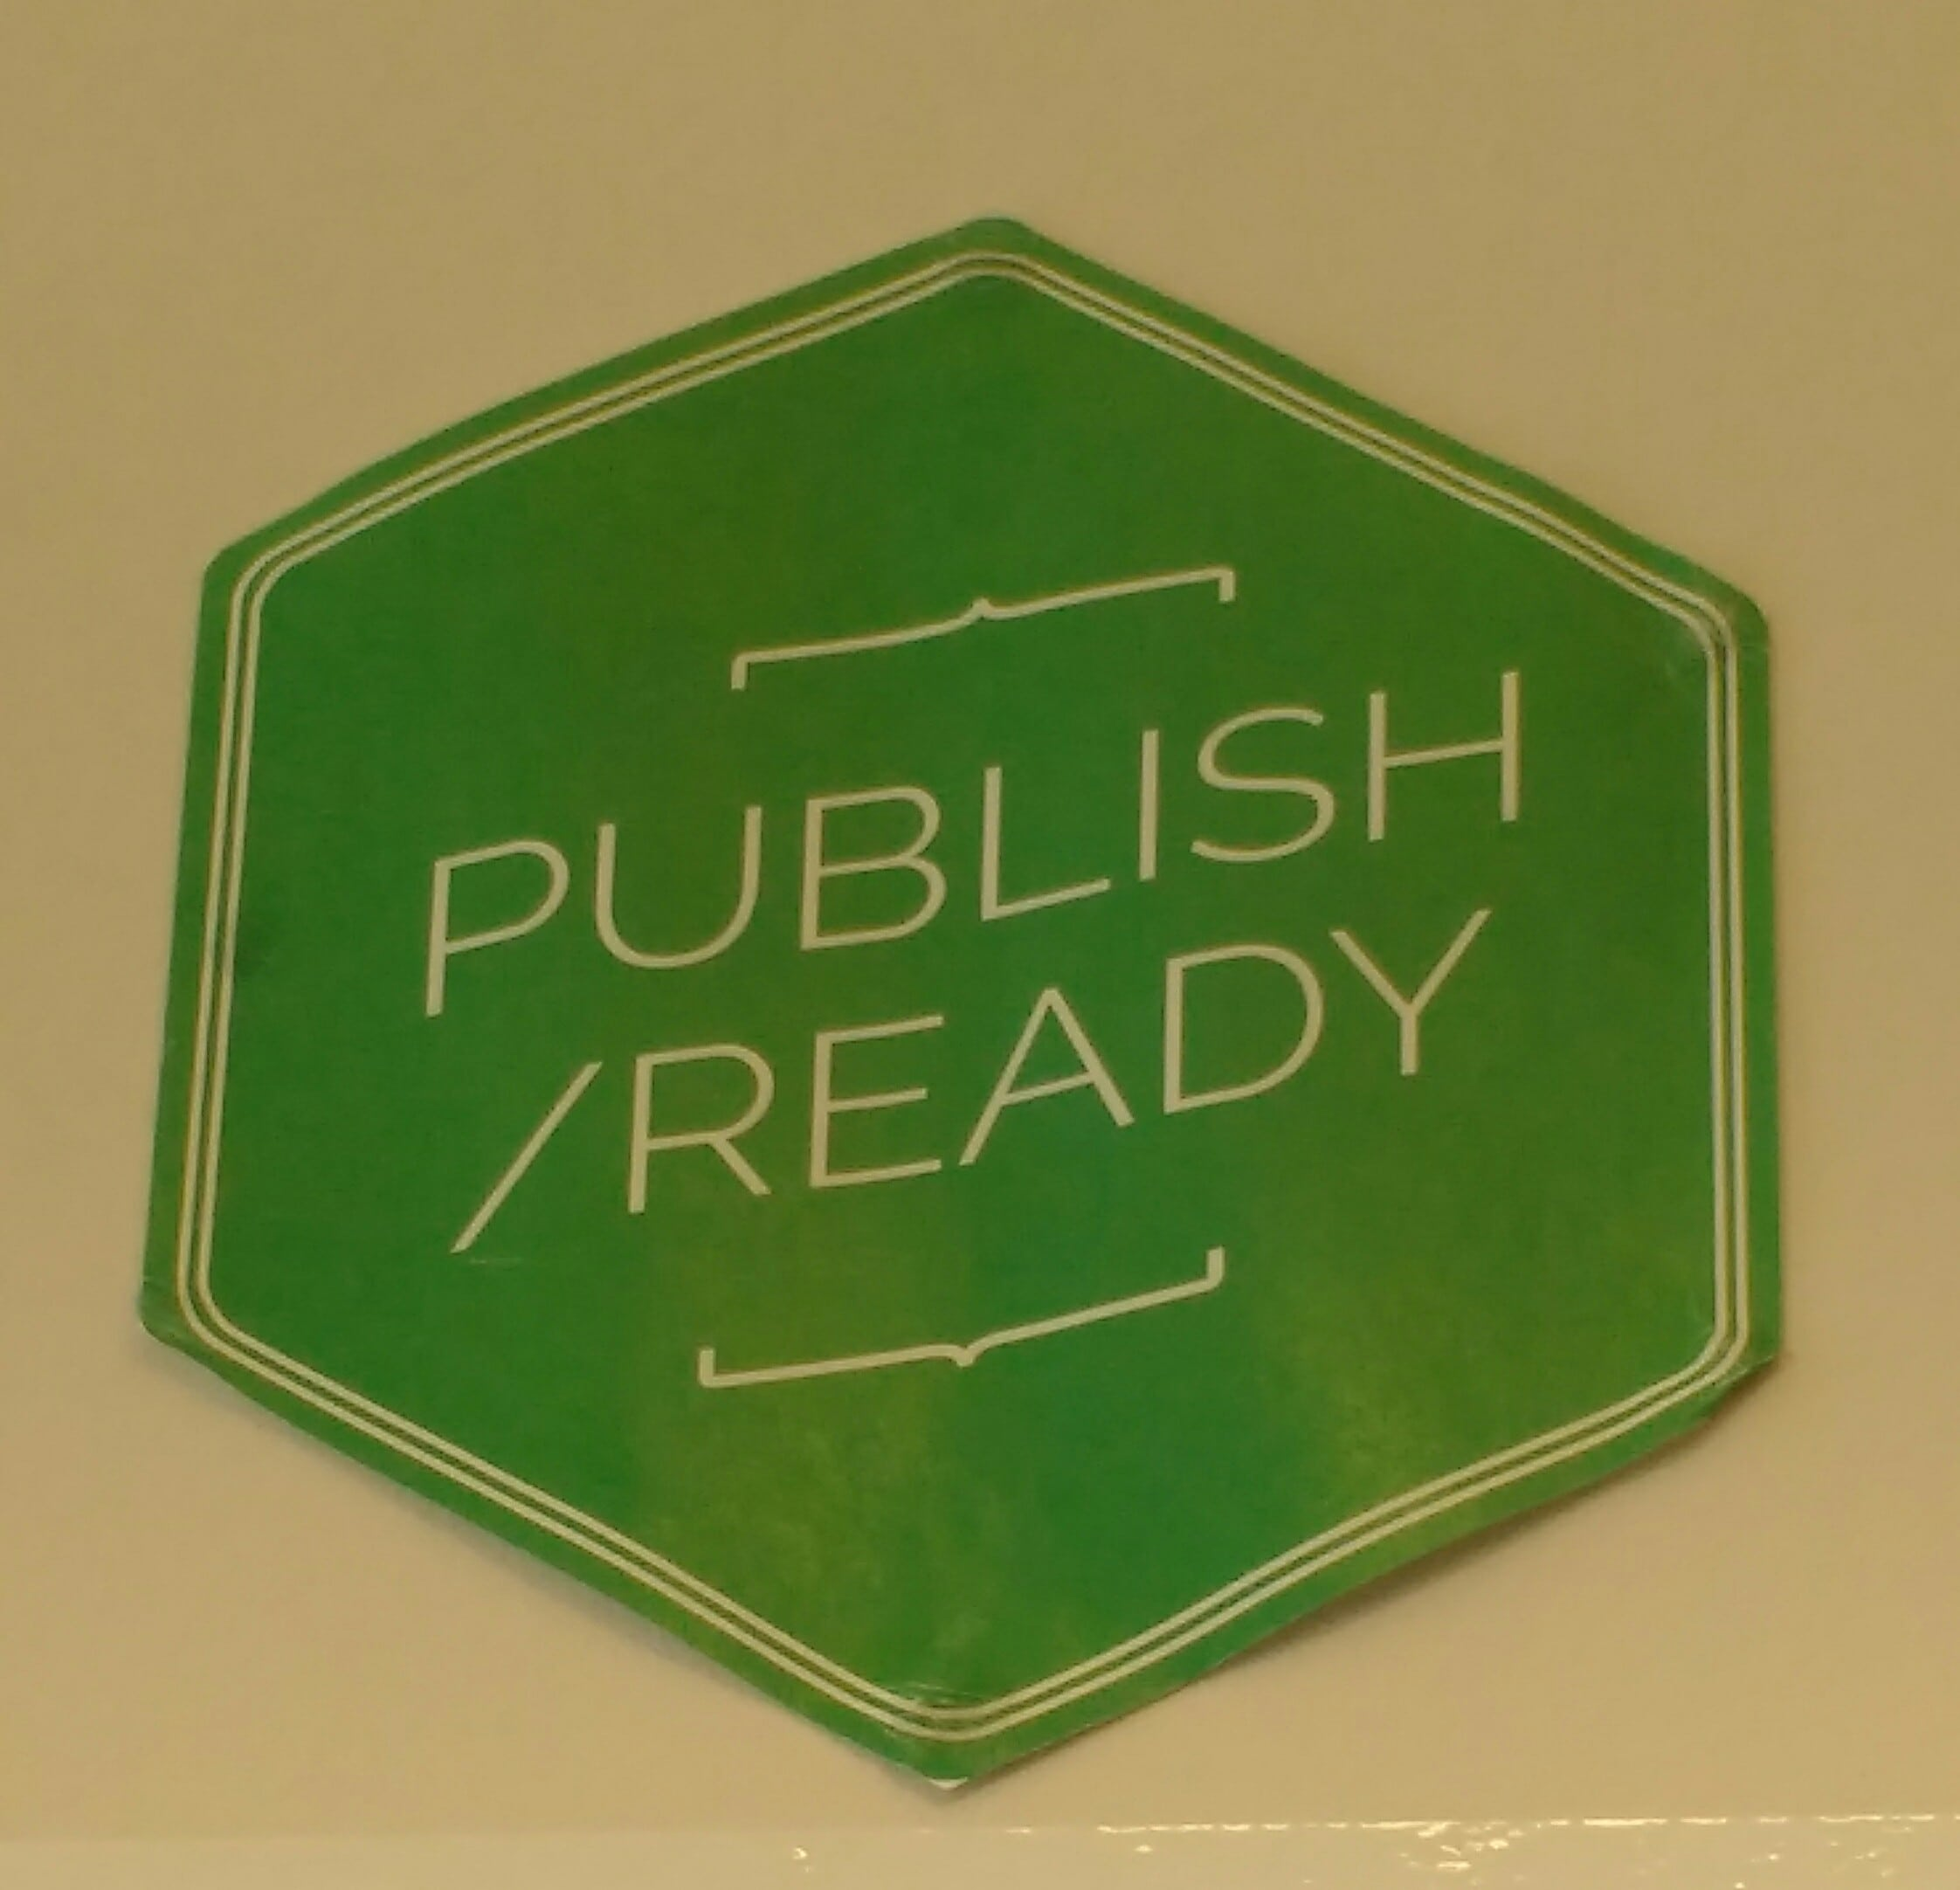 Green hexagonal sign that says 'publish/ready'.